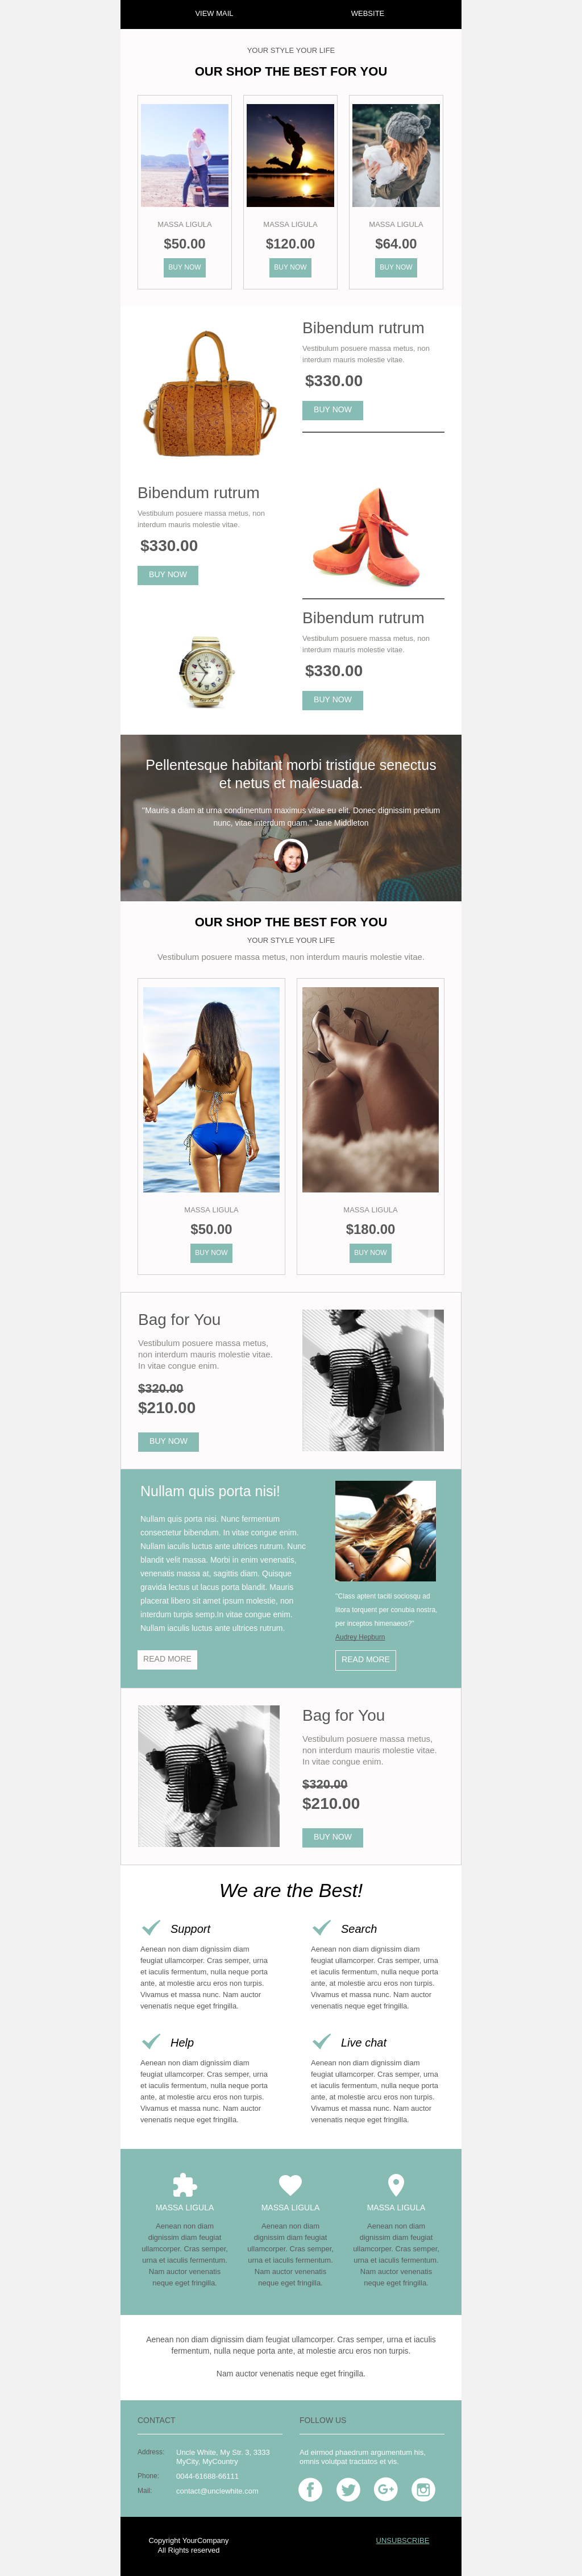 All seasons women's fashion e-commerce promotional email template